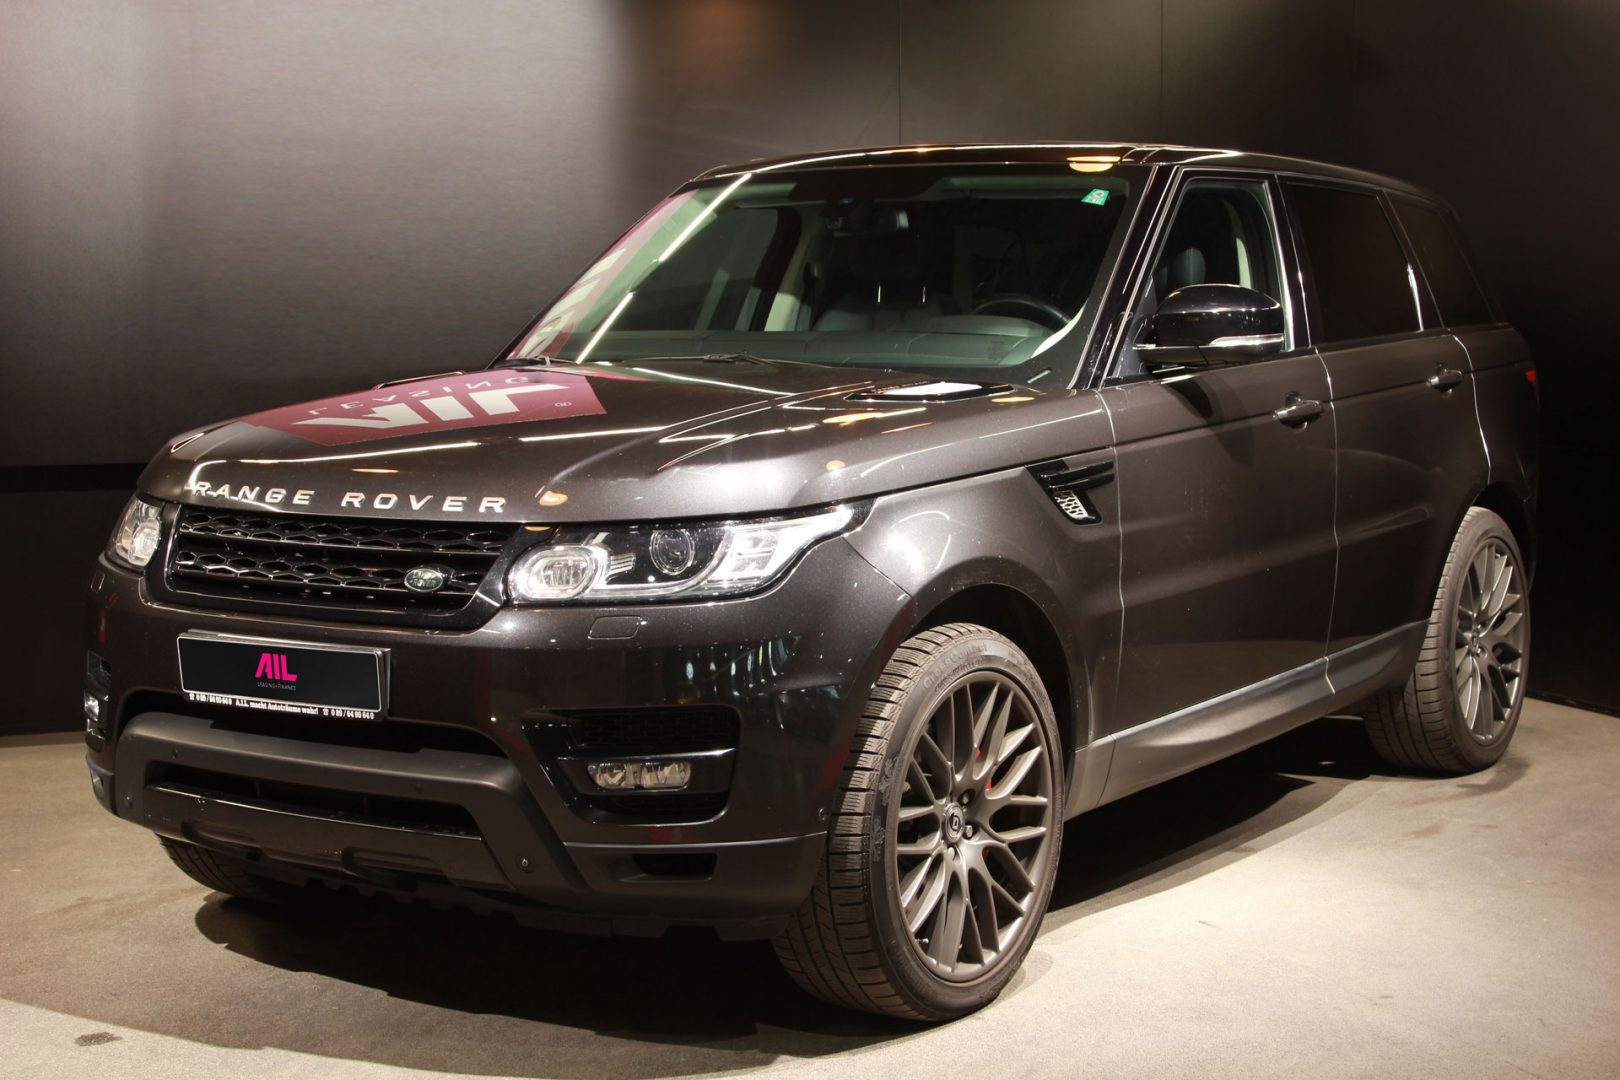 AIL Land Rover Range Rover Sport Supercharge Autobiography 4